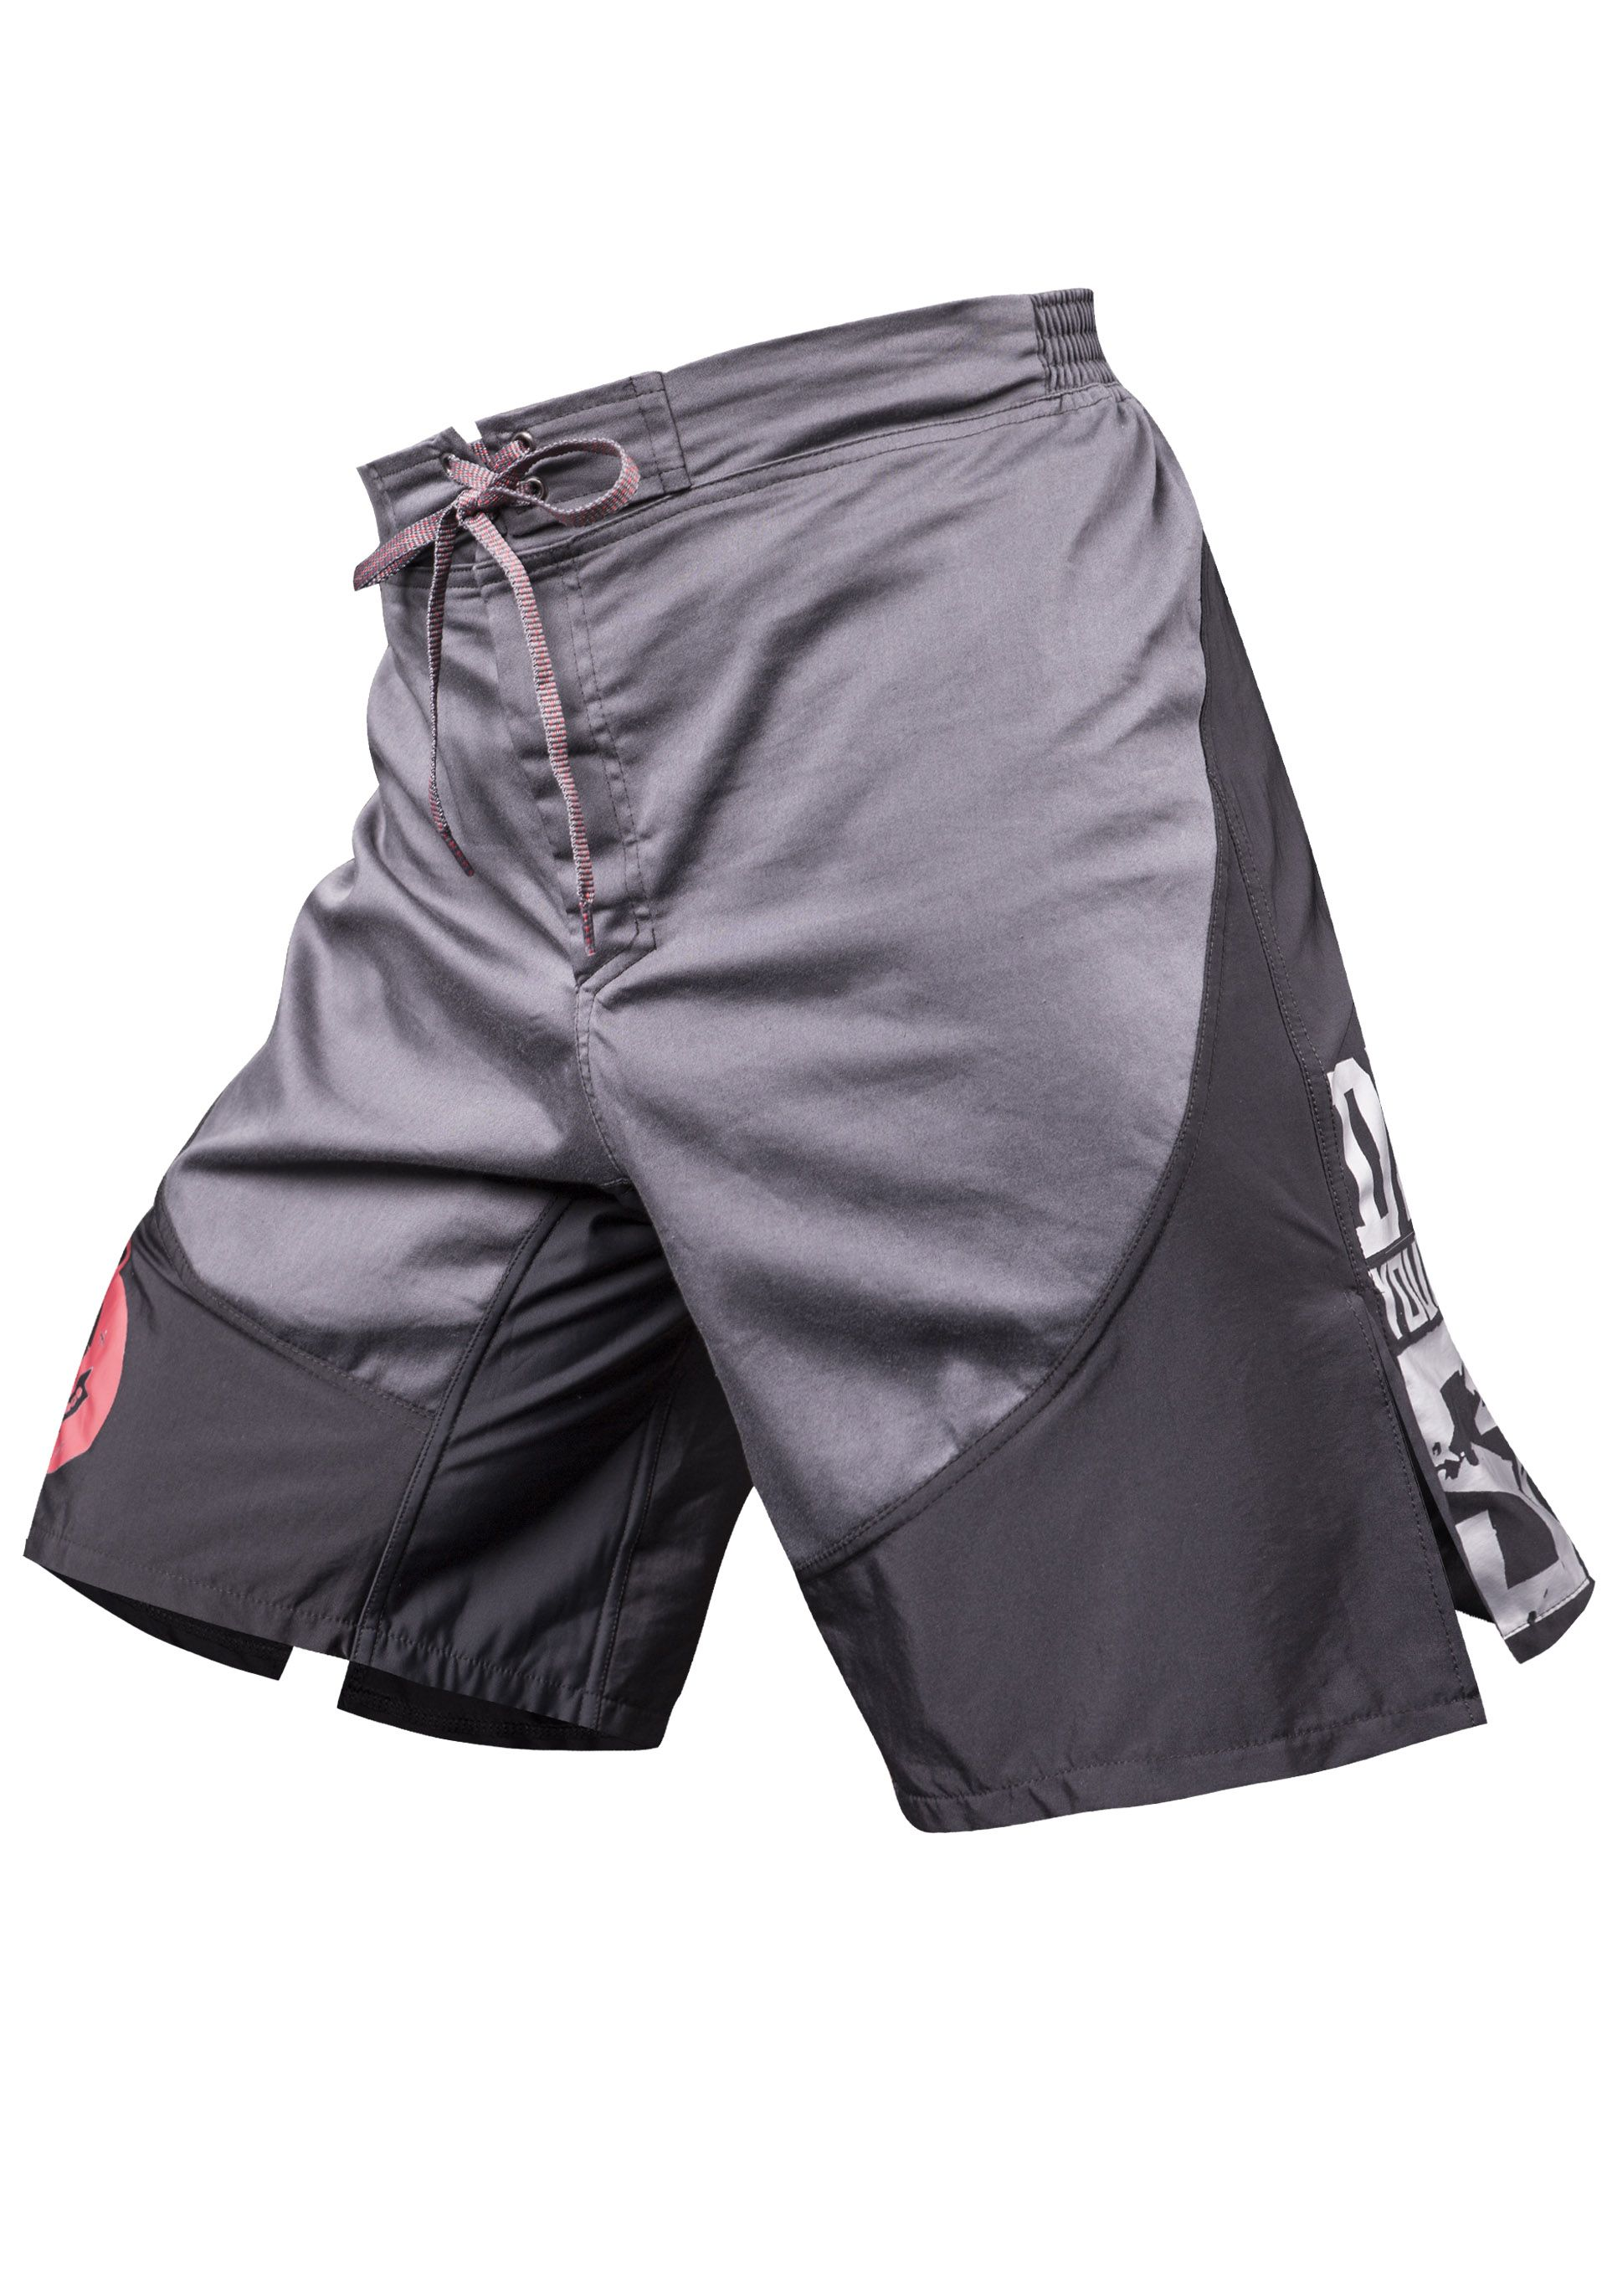 1afbb5a4 Crossfit shorts for men! New brand for Crossfitters contact ...